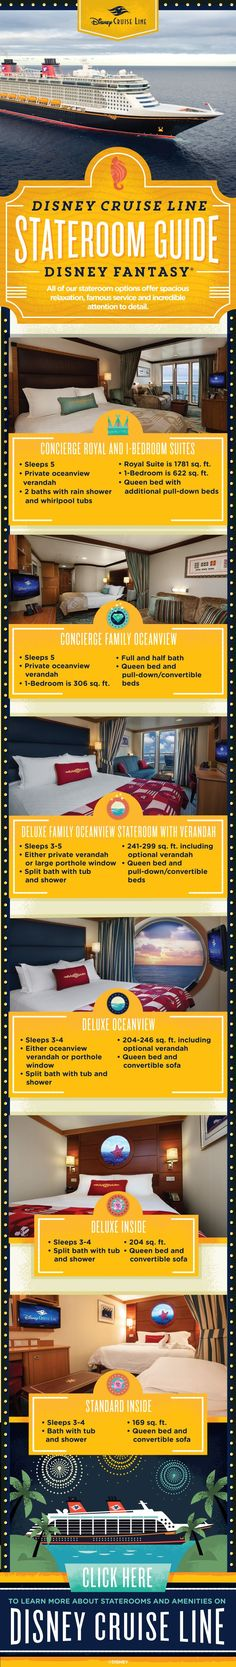 All Disney Cruise Line stateroom options offer spacious relaxation, famous Guest service and incredible attention to detail. Contact me at joy.hiett@simplyenchanted.info to see which stateroom is best for your family onboard the Disney Fantasy! #disneycruise